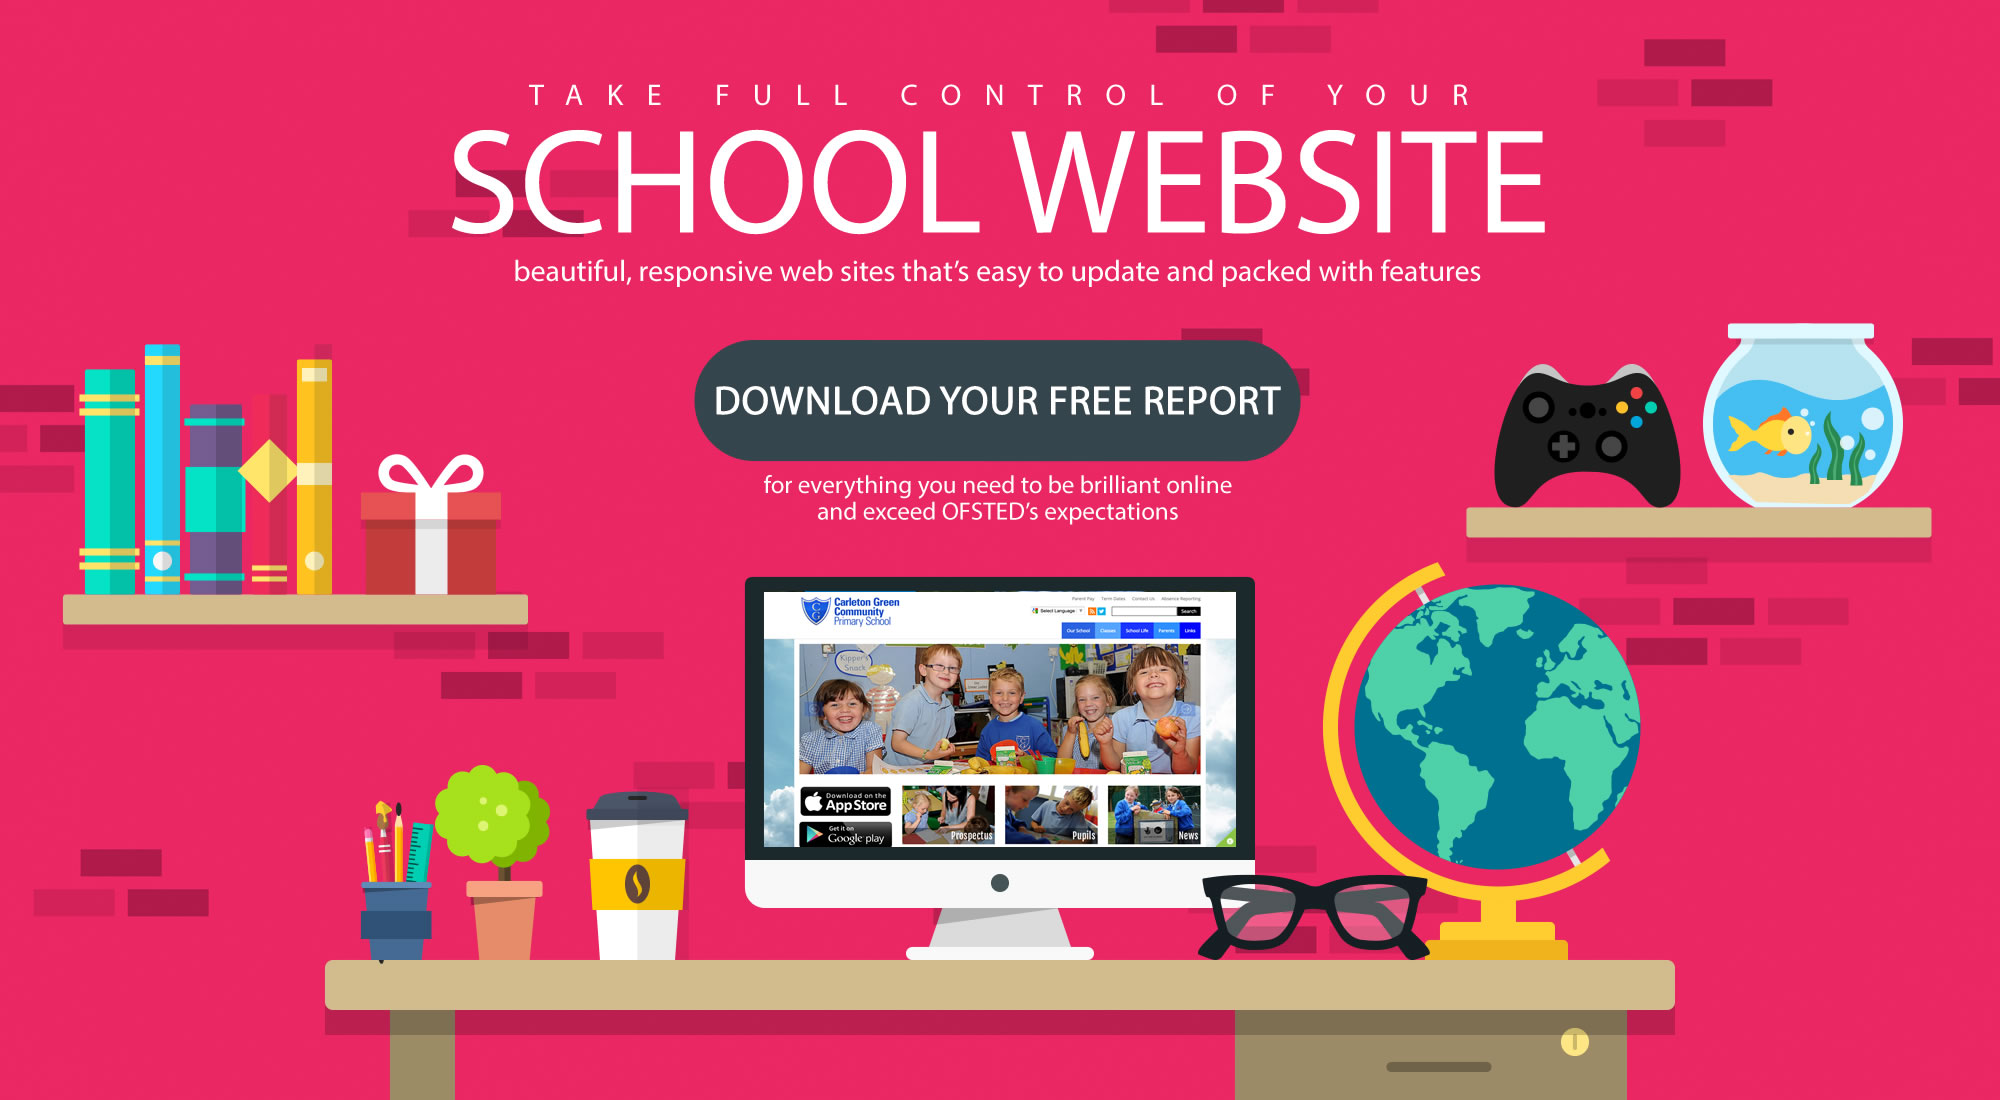 take-full-control-of-your-school-website-2